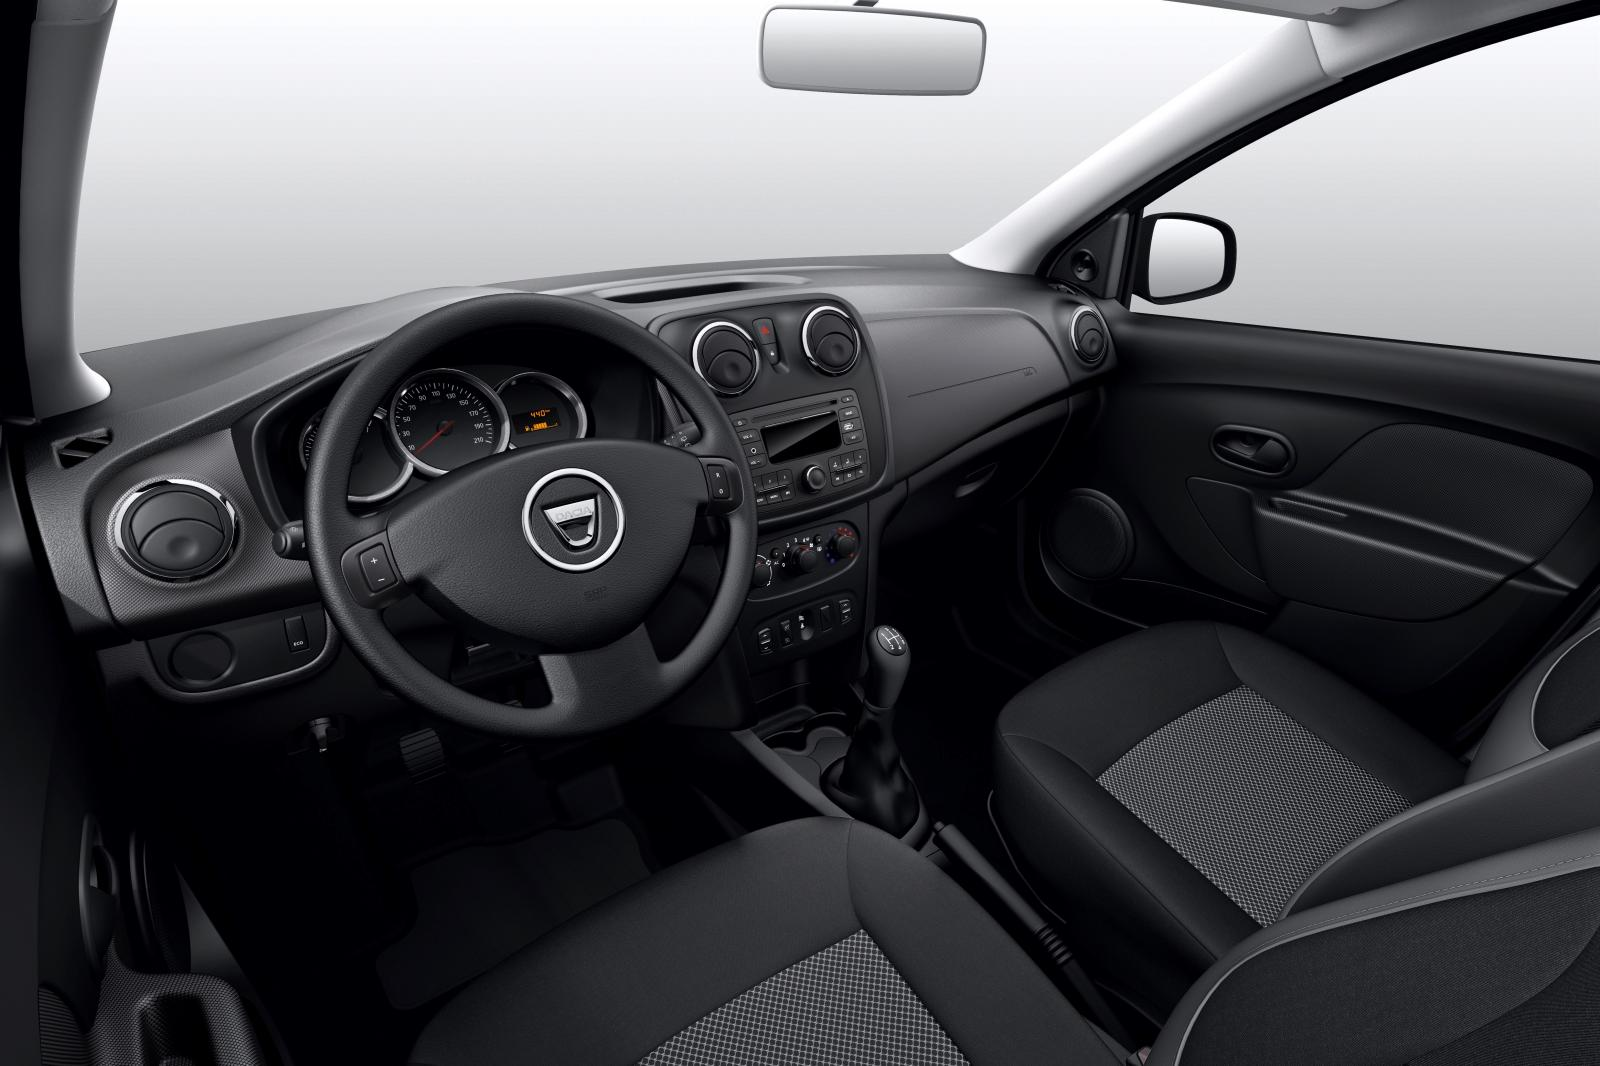 Dacia Sandero Music interior unveiled